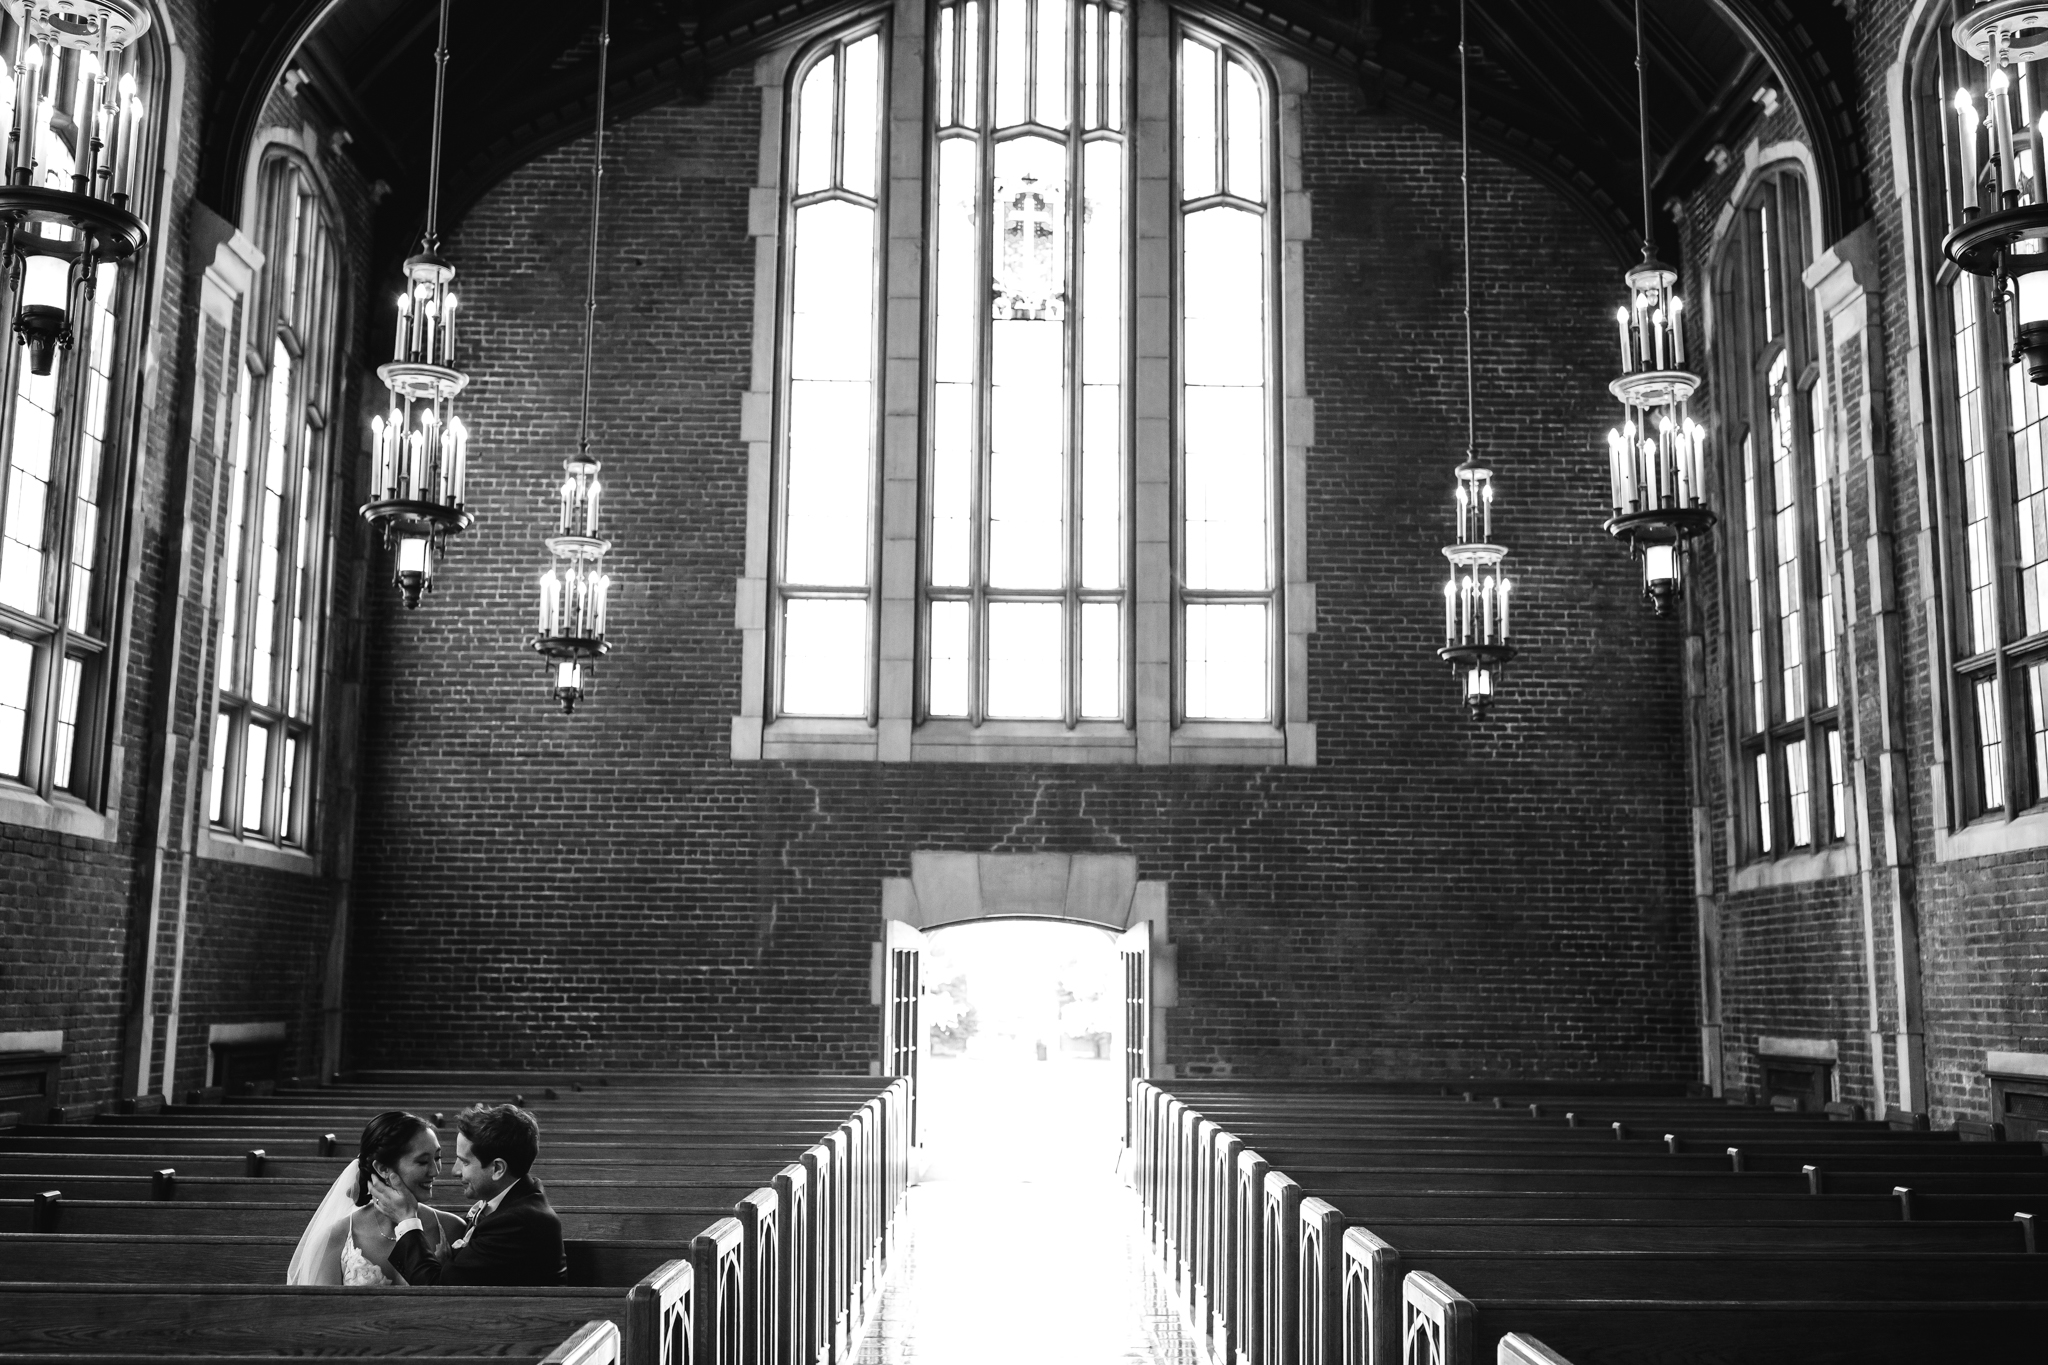 chattanooga-wedding-photographers-thewarmtharoundyou-waterhouse-pavilion-patten-chapel-wedding-sam-dusty (133 of 269).jpg